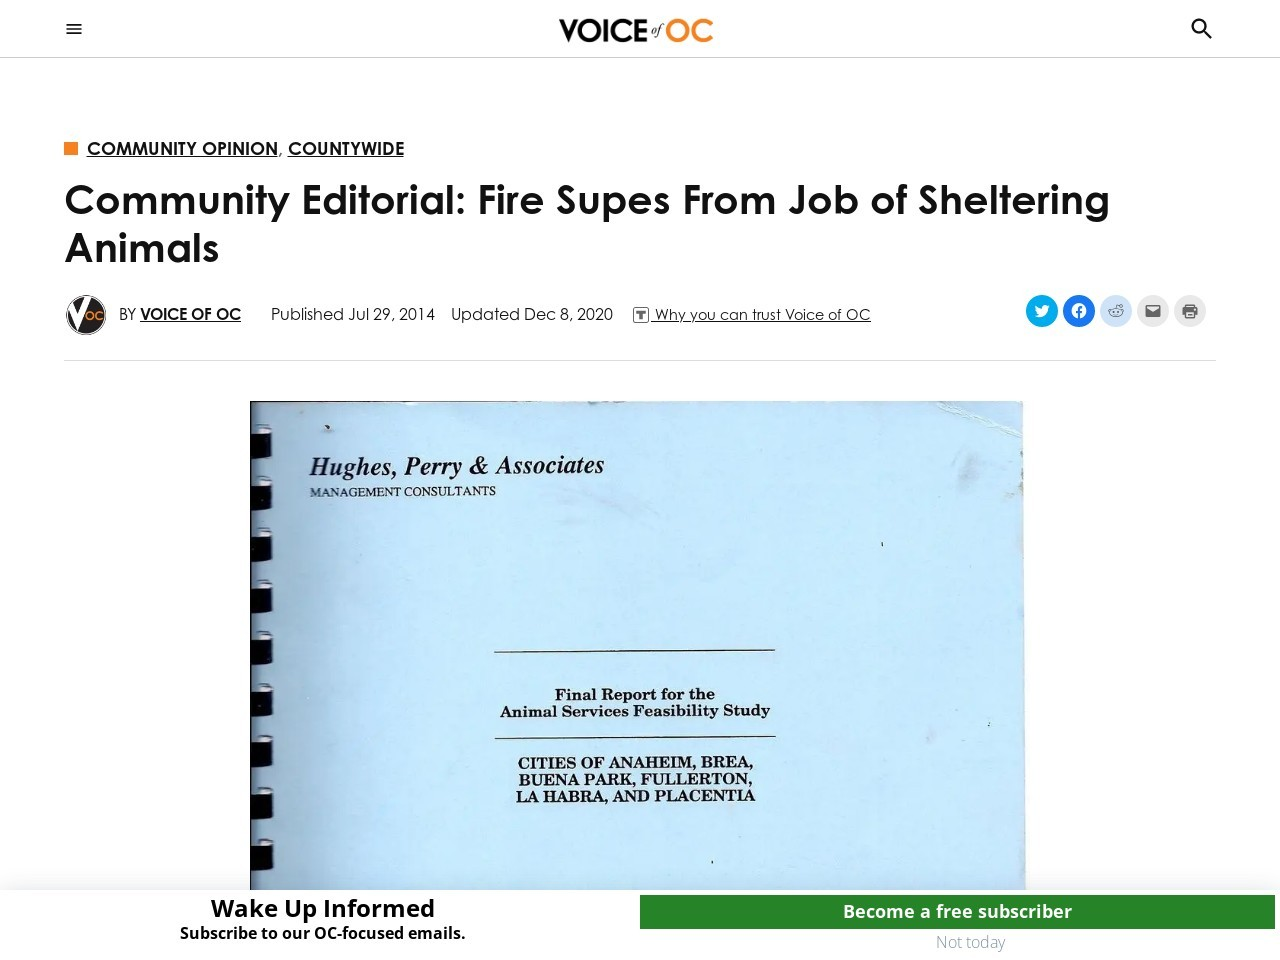 Community Editorial: Fire Supes From Job of Sheltering Animals